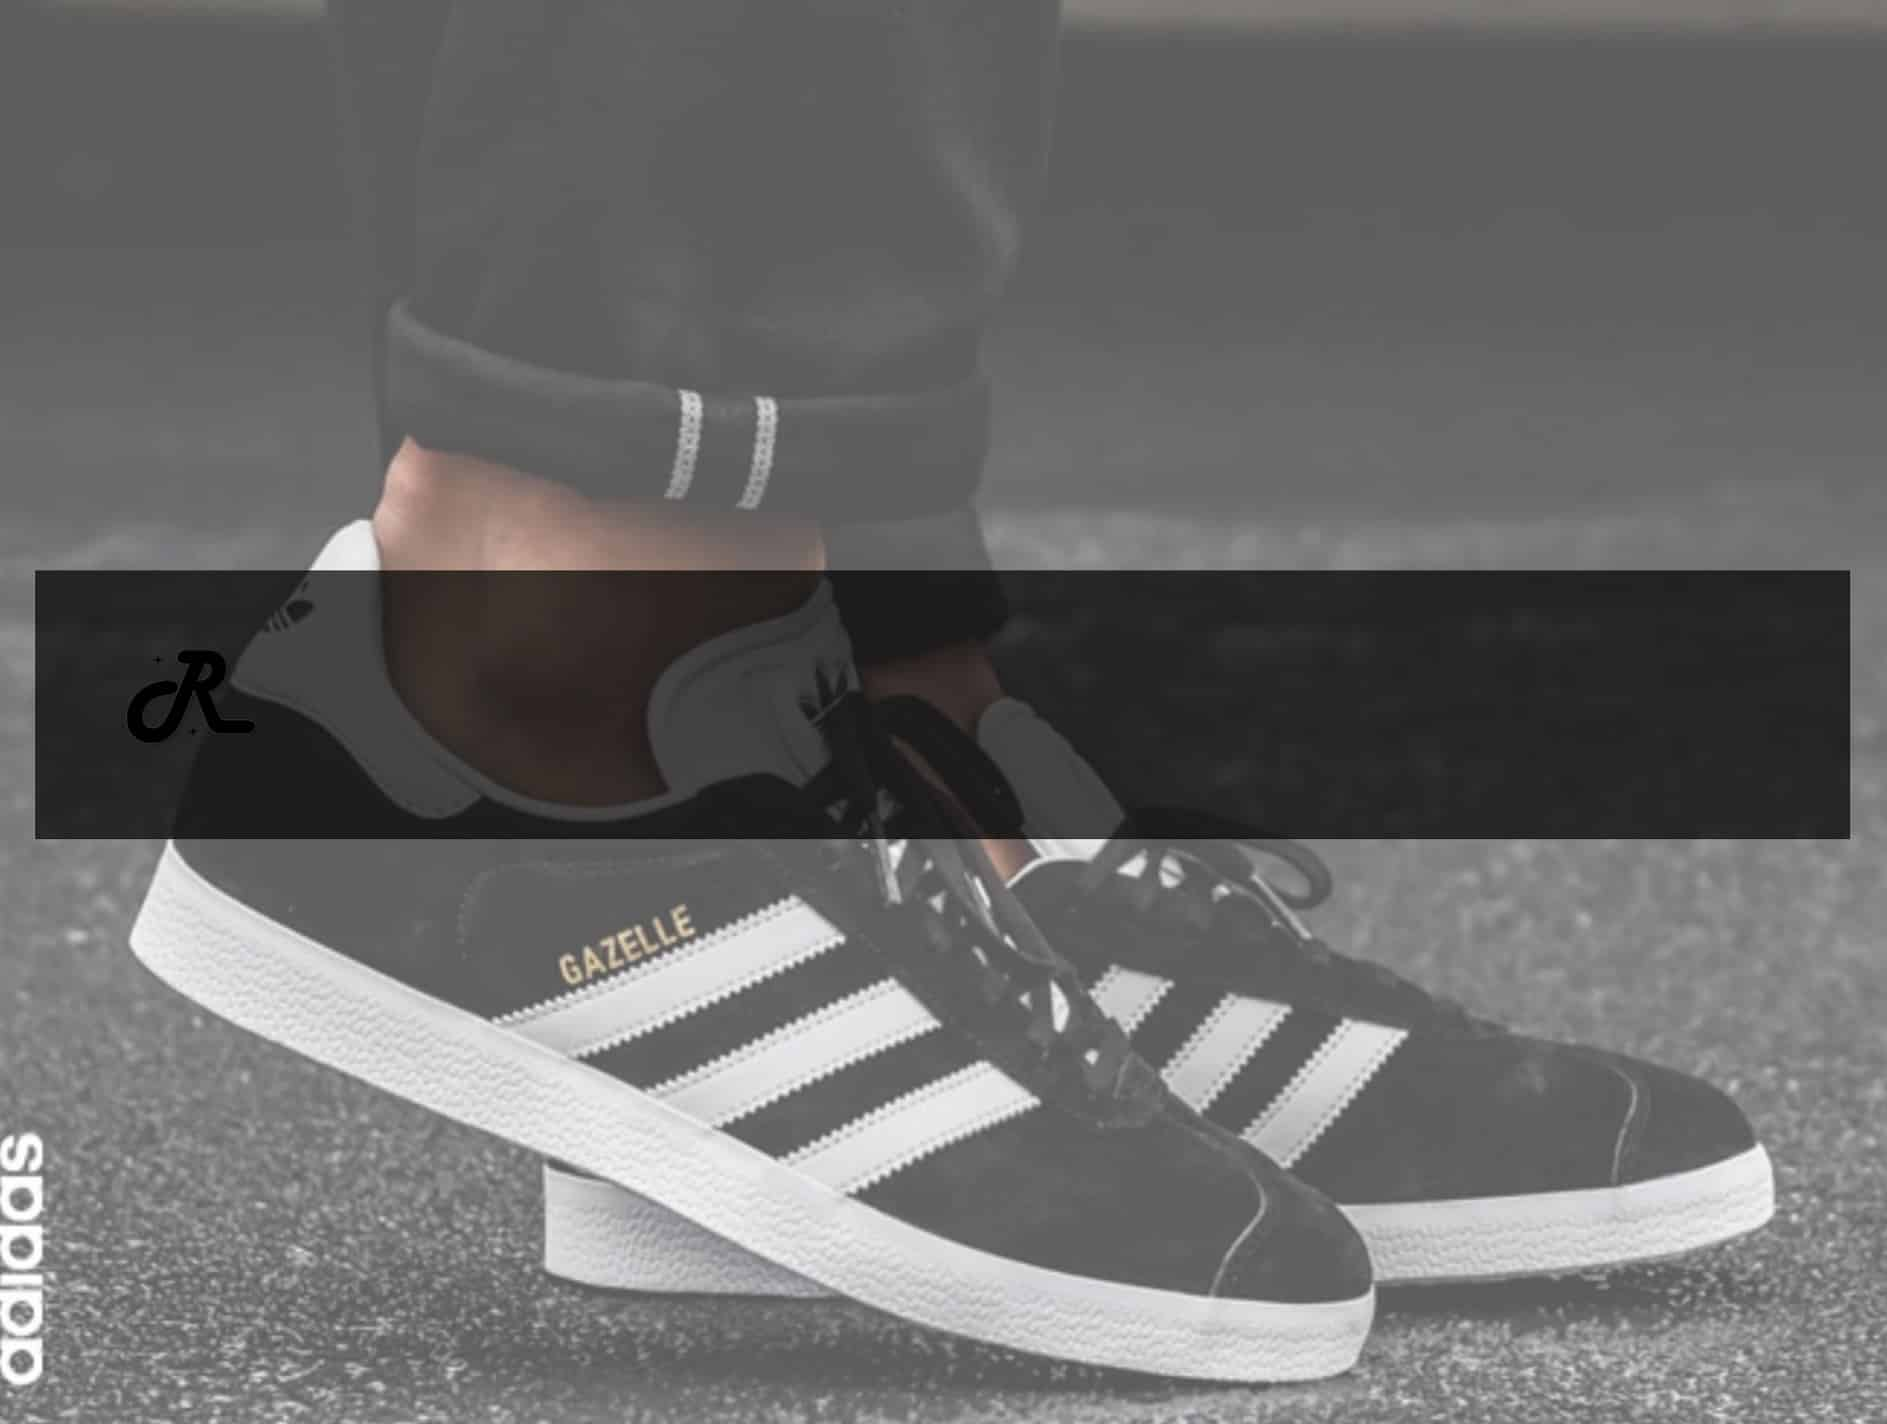 8a134c0b1 Best AliExpress Adidas Shoes Replica Sellers – Trusted Ultimate Guide - Best  Replicas from China